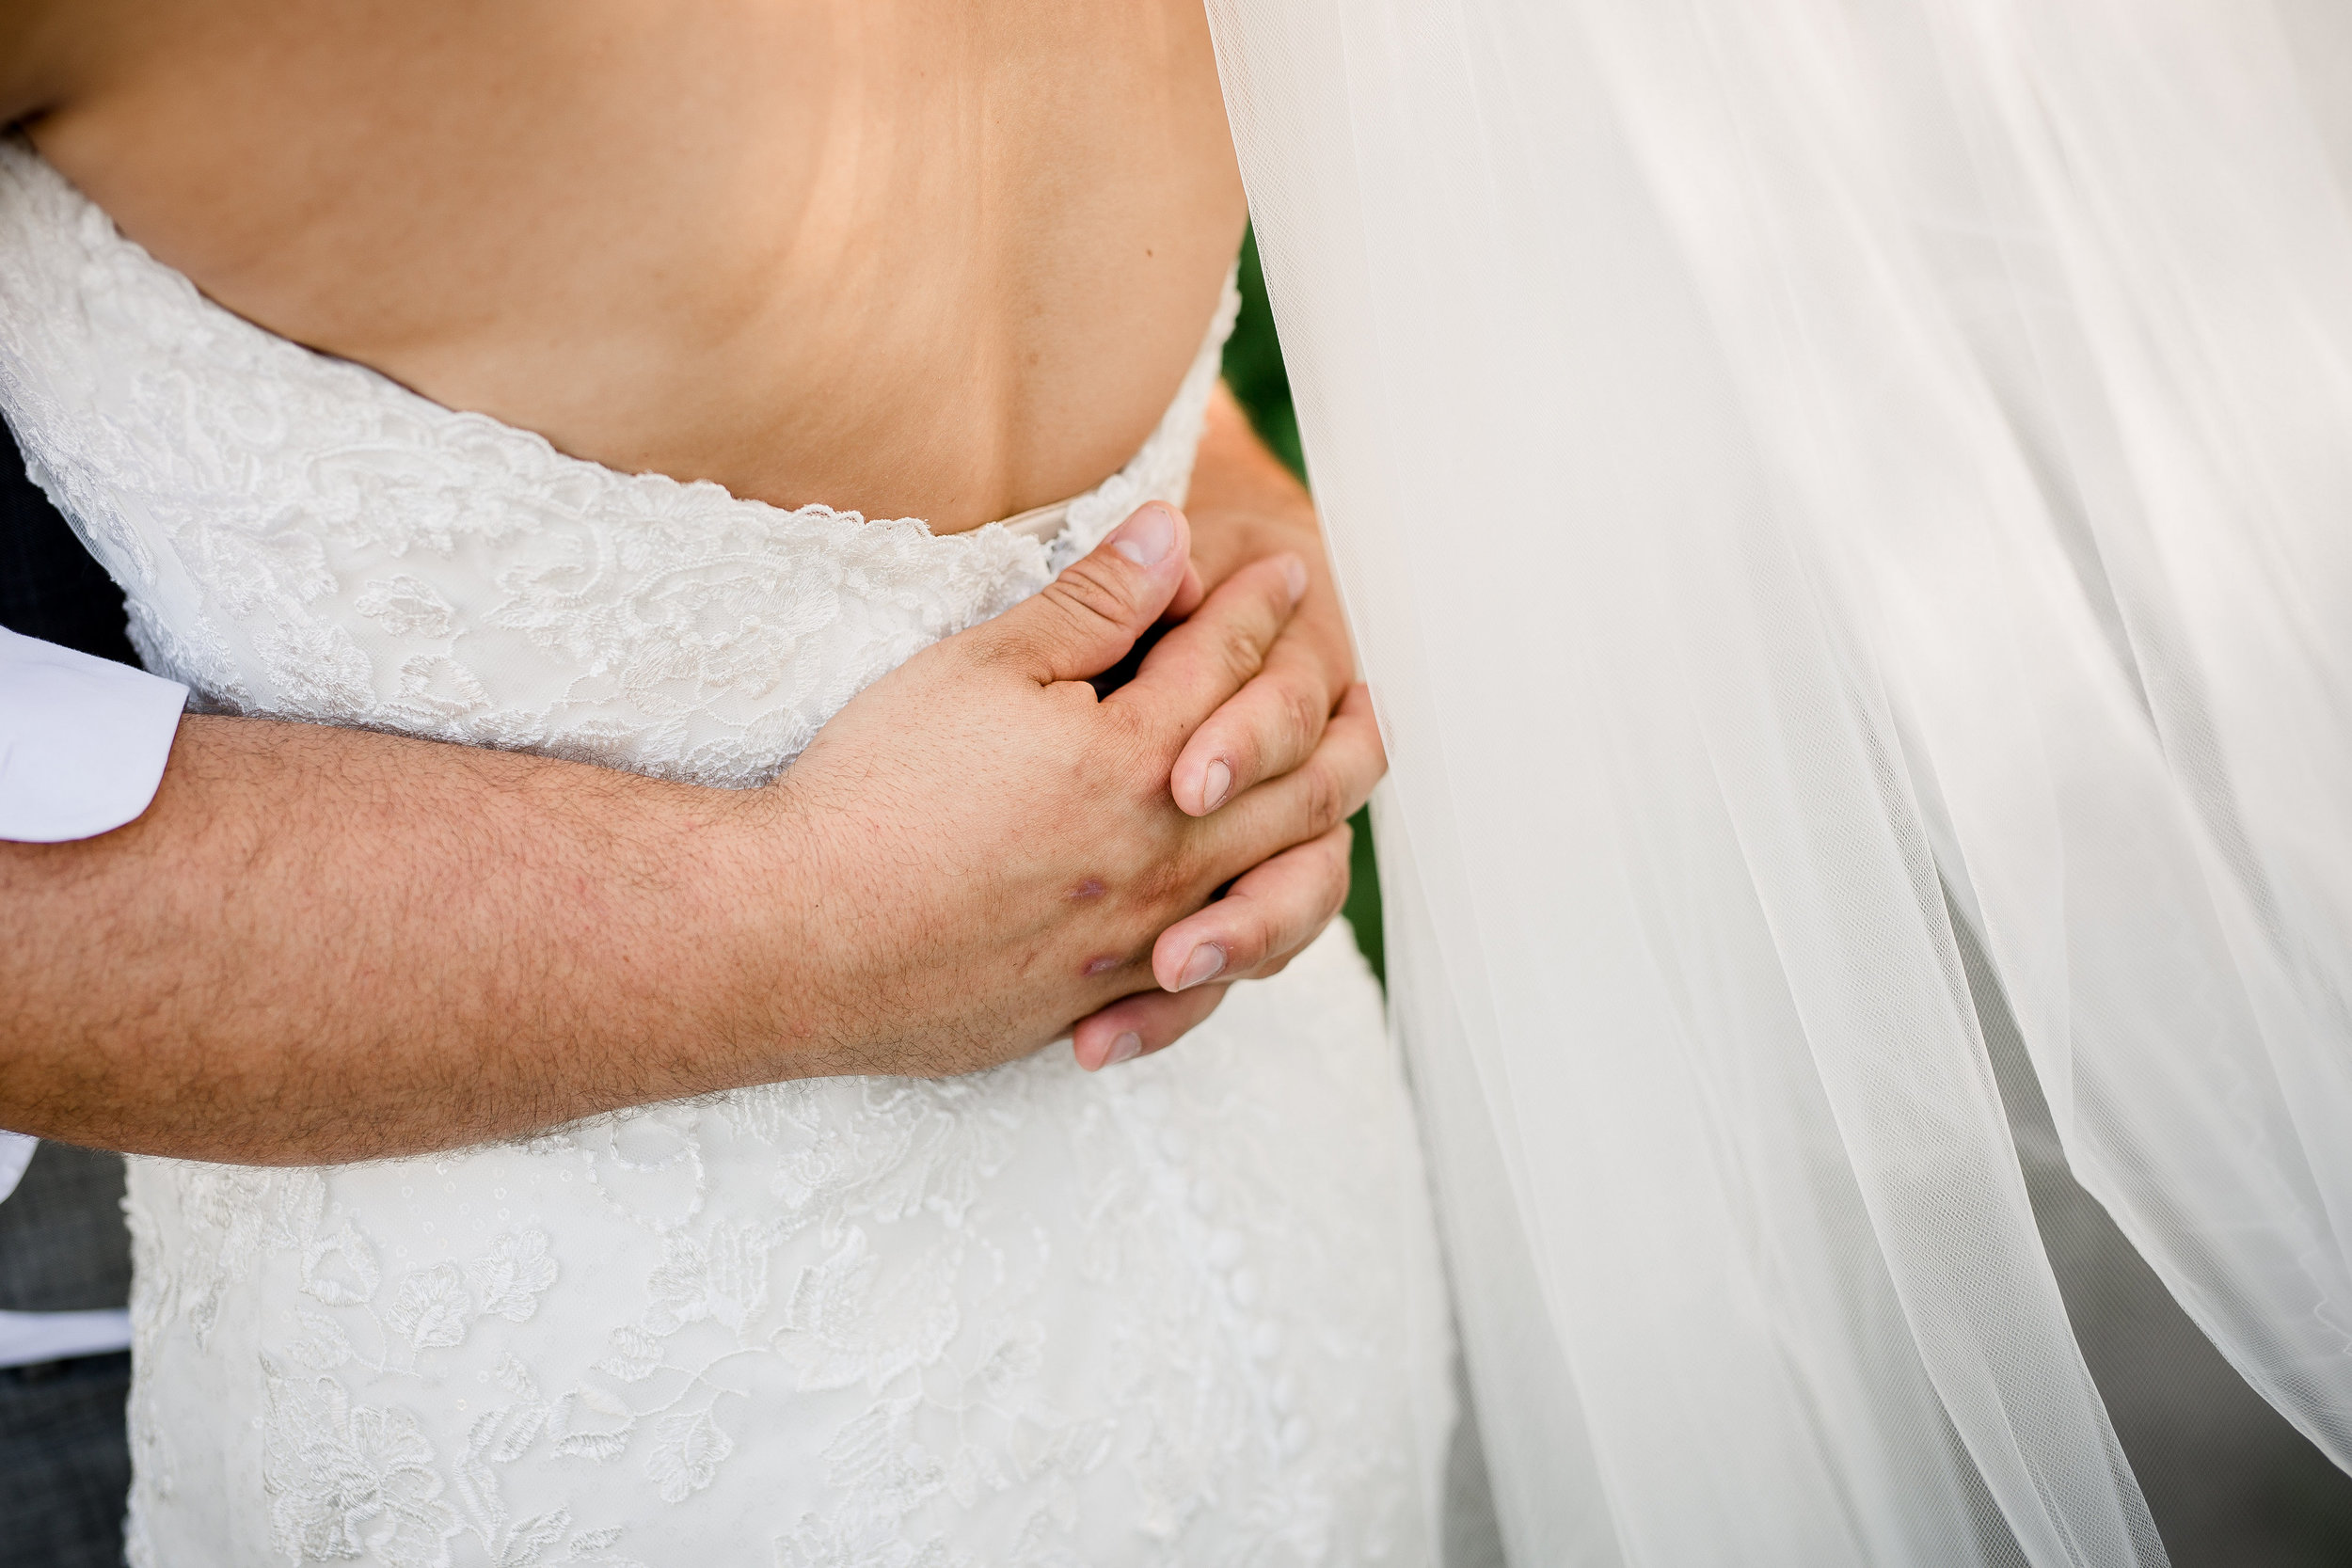 View More: http://amandacoldicuttphotography.pass.us/wedding--shea--dave-june-6-2015